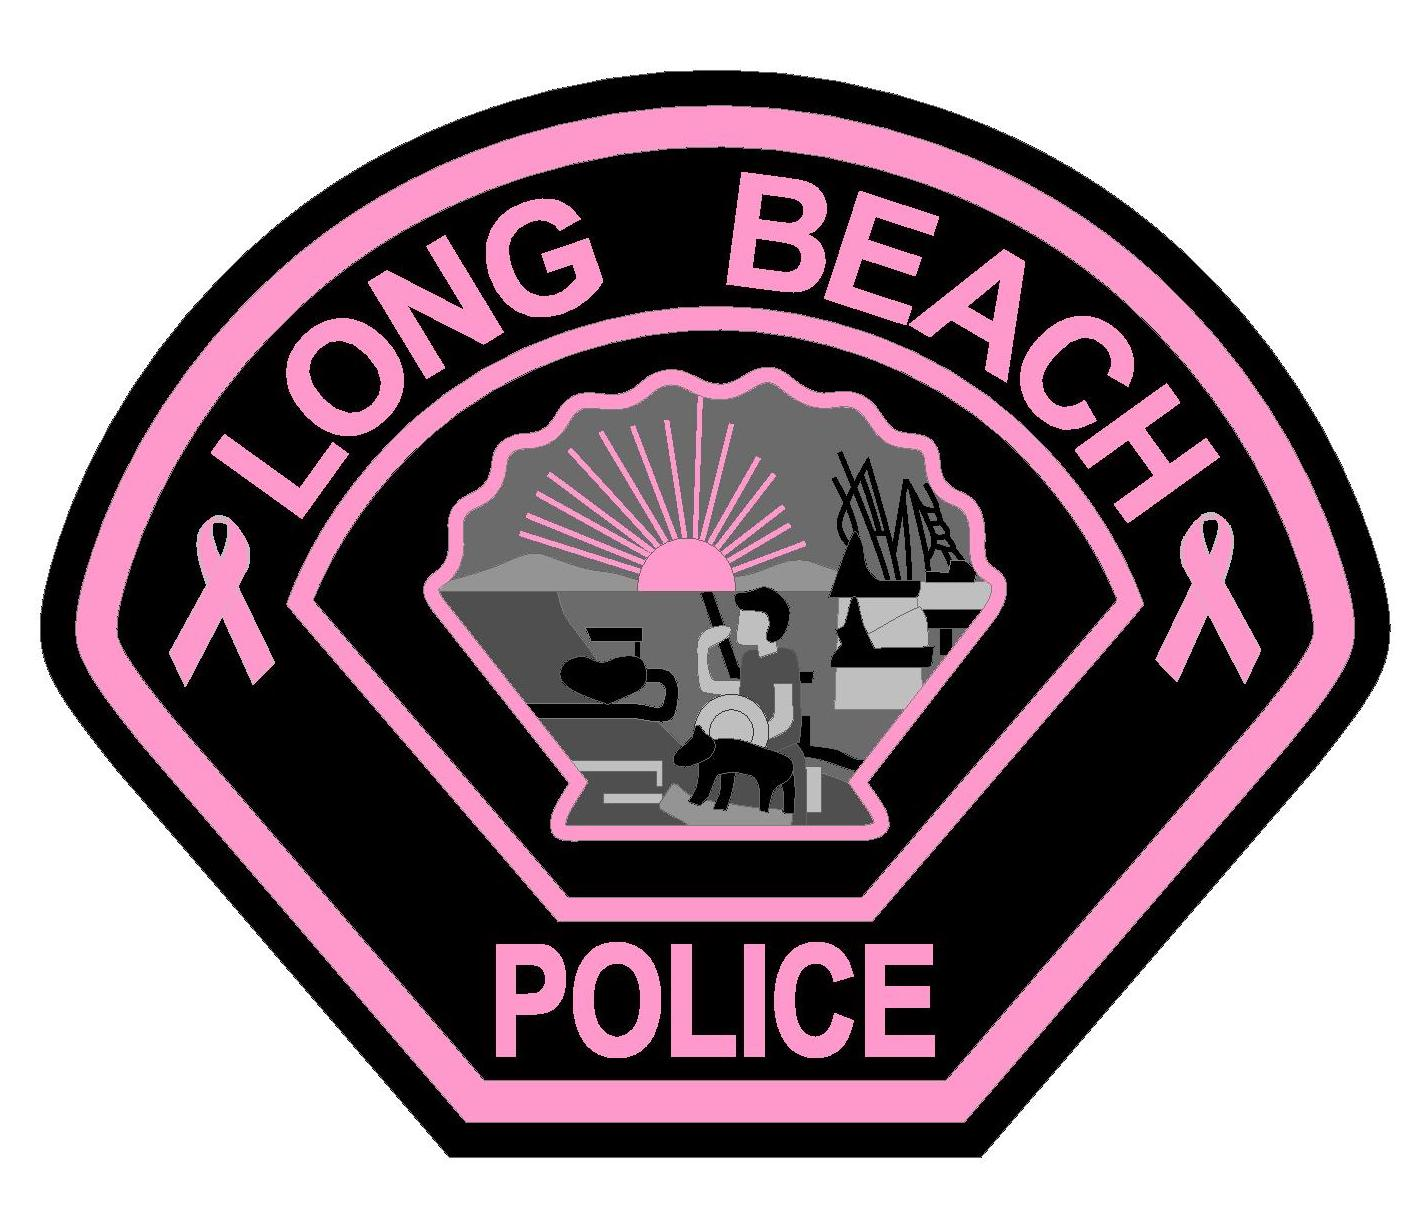 Long Beach Police (CA) - PINK PATCH 2017-page-001.jpg